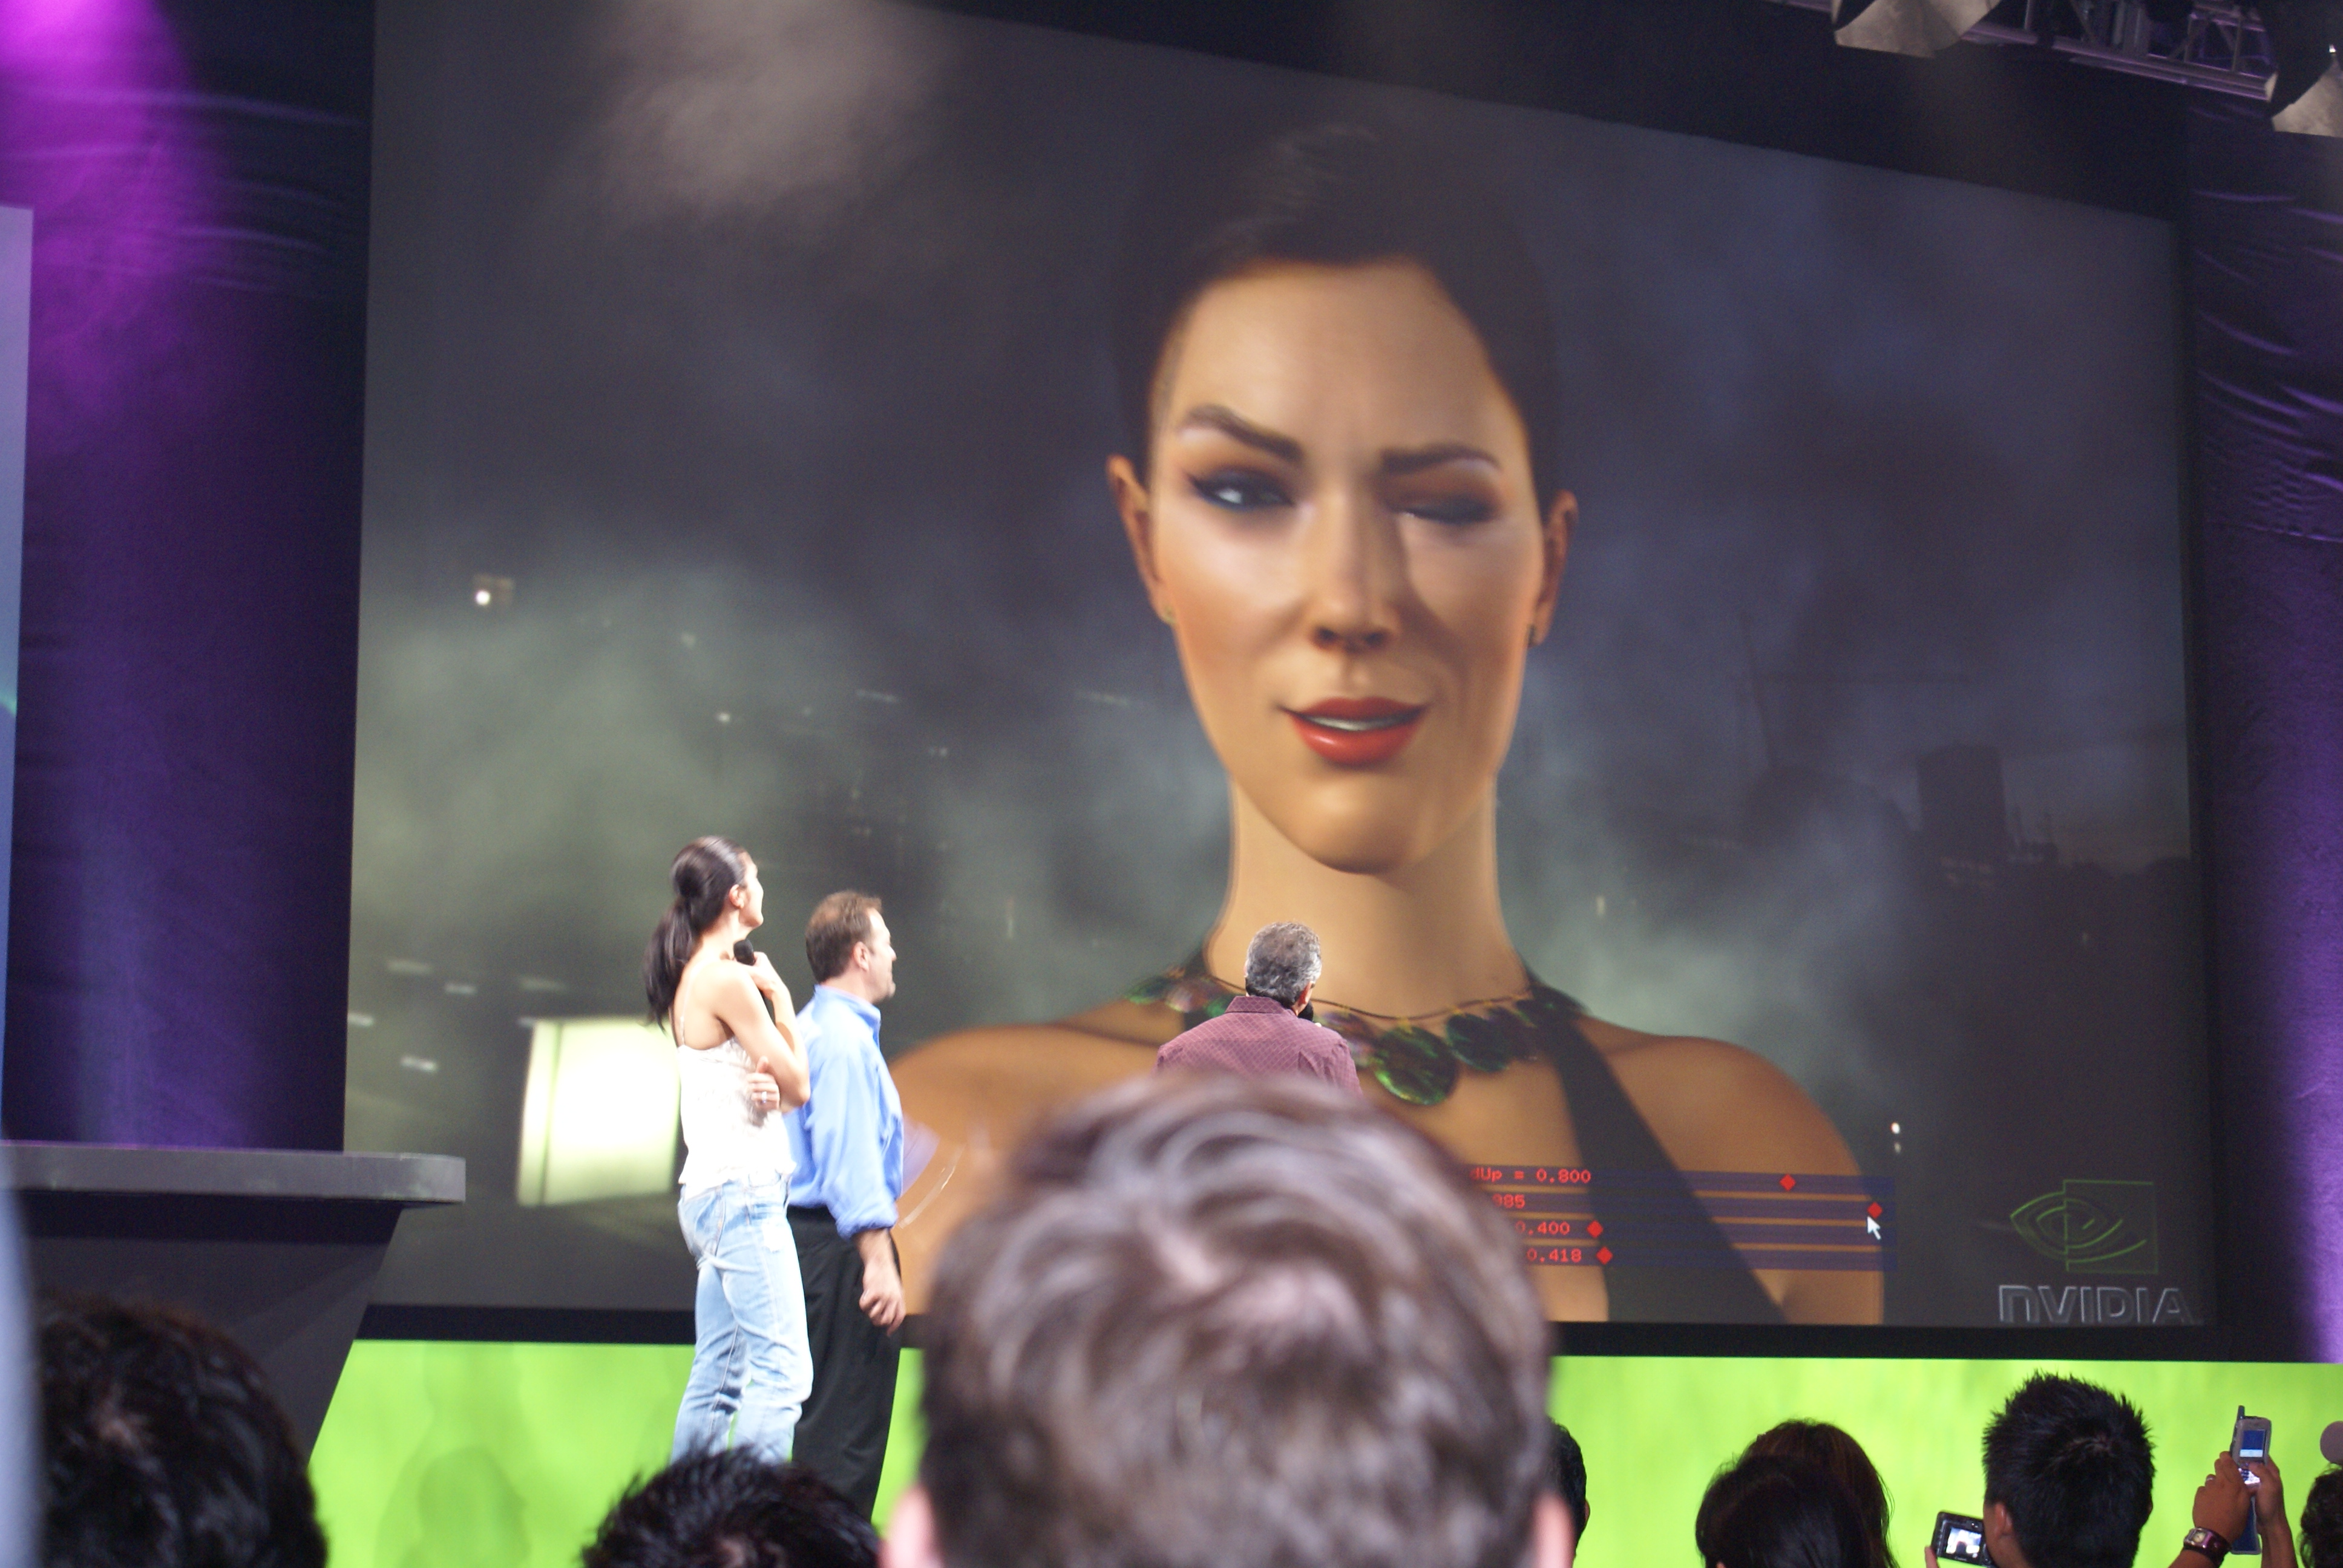 Geforce 8 Series Vga Pci 256 Mb Ddr2 8400gs 8300gs Model Adrianne Curry Watching A 3d Animation Of Herself During Demo